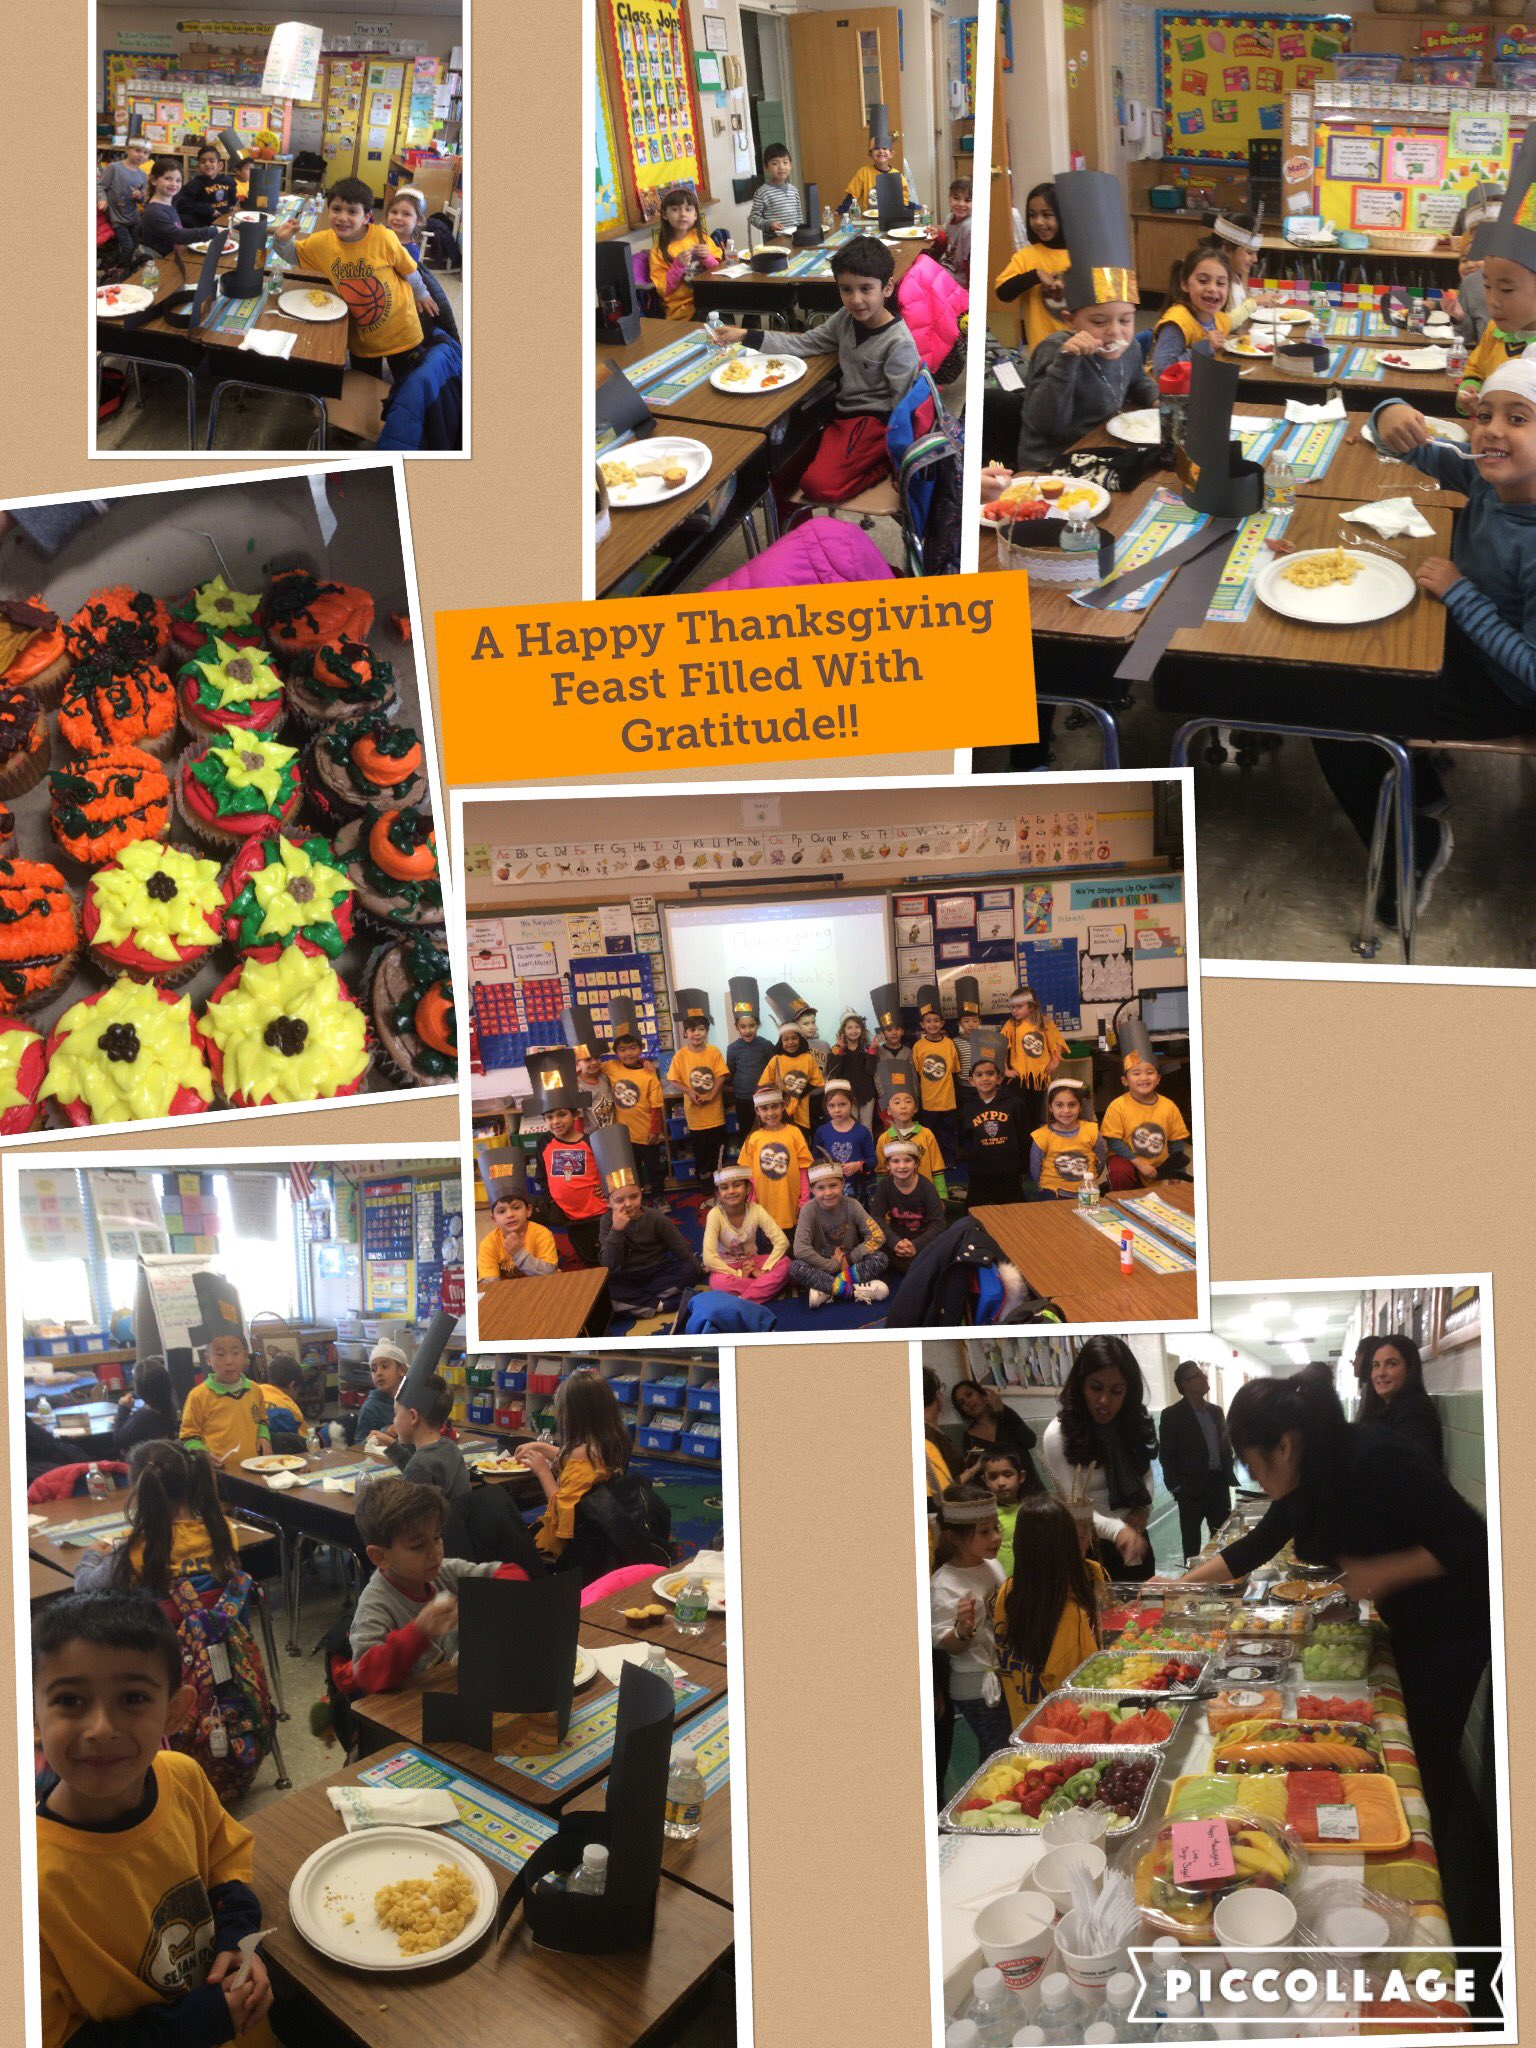 A Happy Thanksgiving Feast Filled With Gratitude!! #seamanstrength @Ivysherman https://t.co/8YNKq2joHf